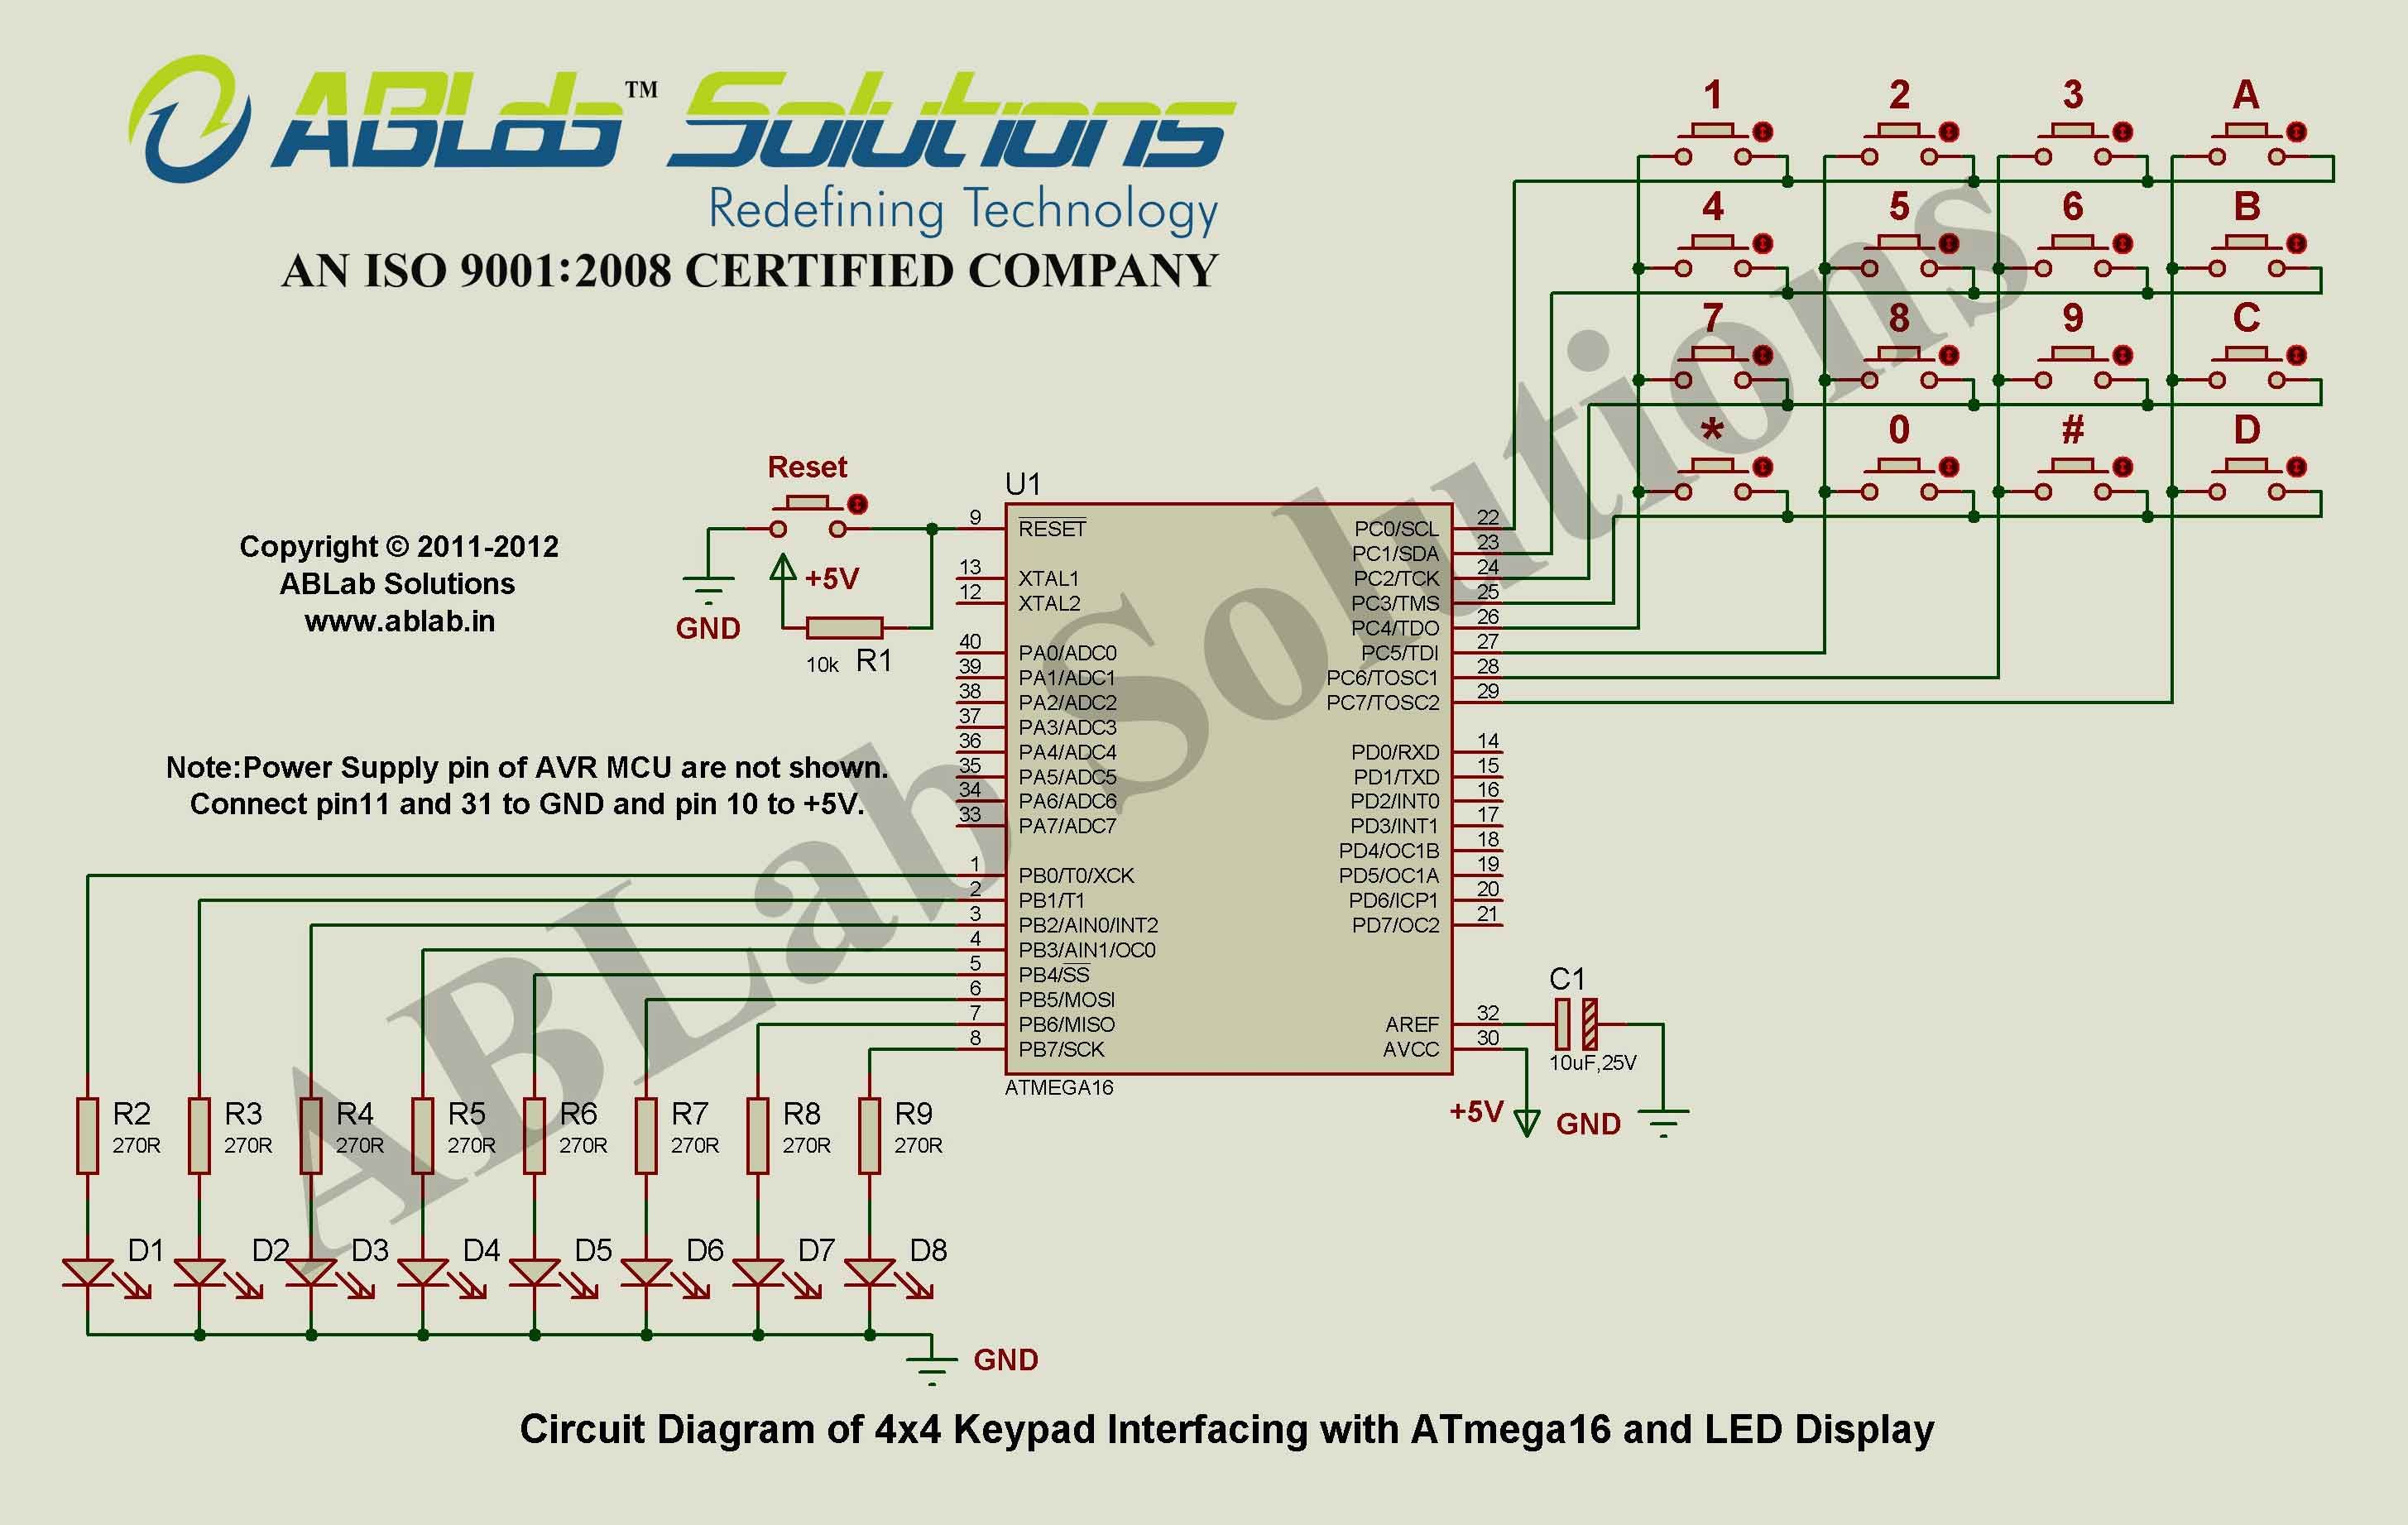 medium resolution of 4x4 keypad interfacing with avr atmega16 microcontroller and led display circuit diagram ablab solutions